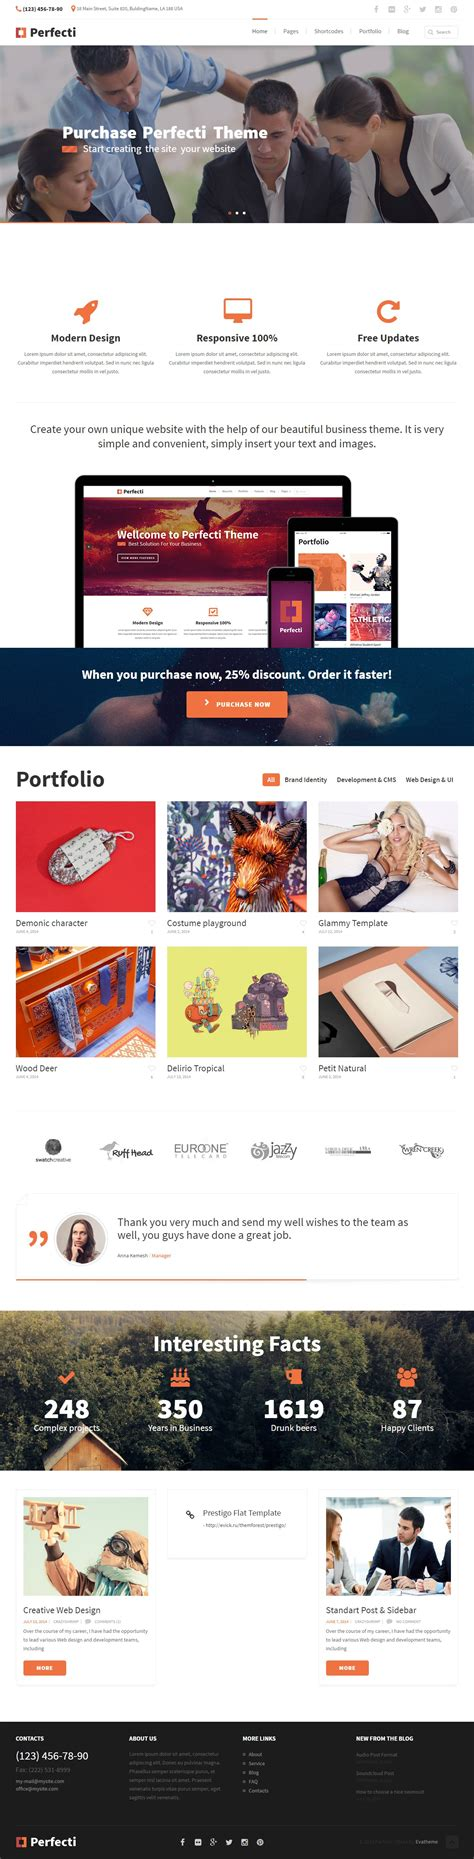 wordpress layout drag and drop 5 best responsive drag and drop wordpress themes 2015